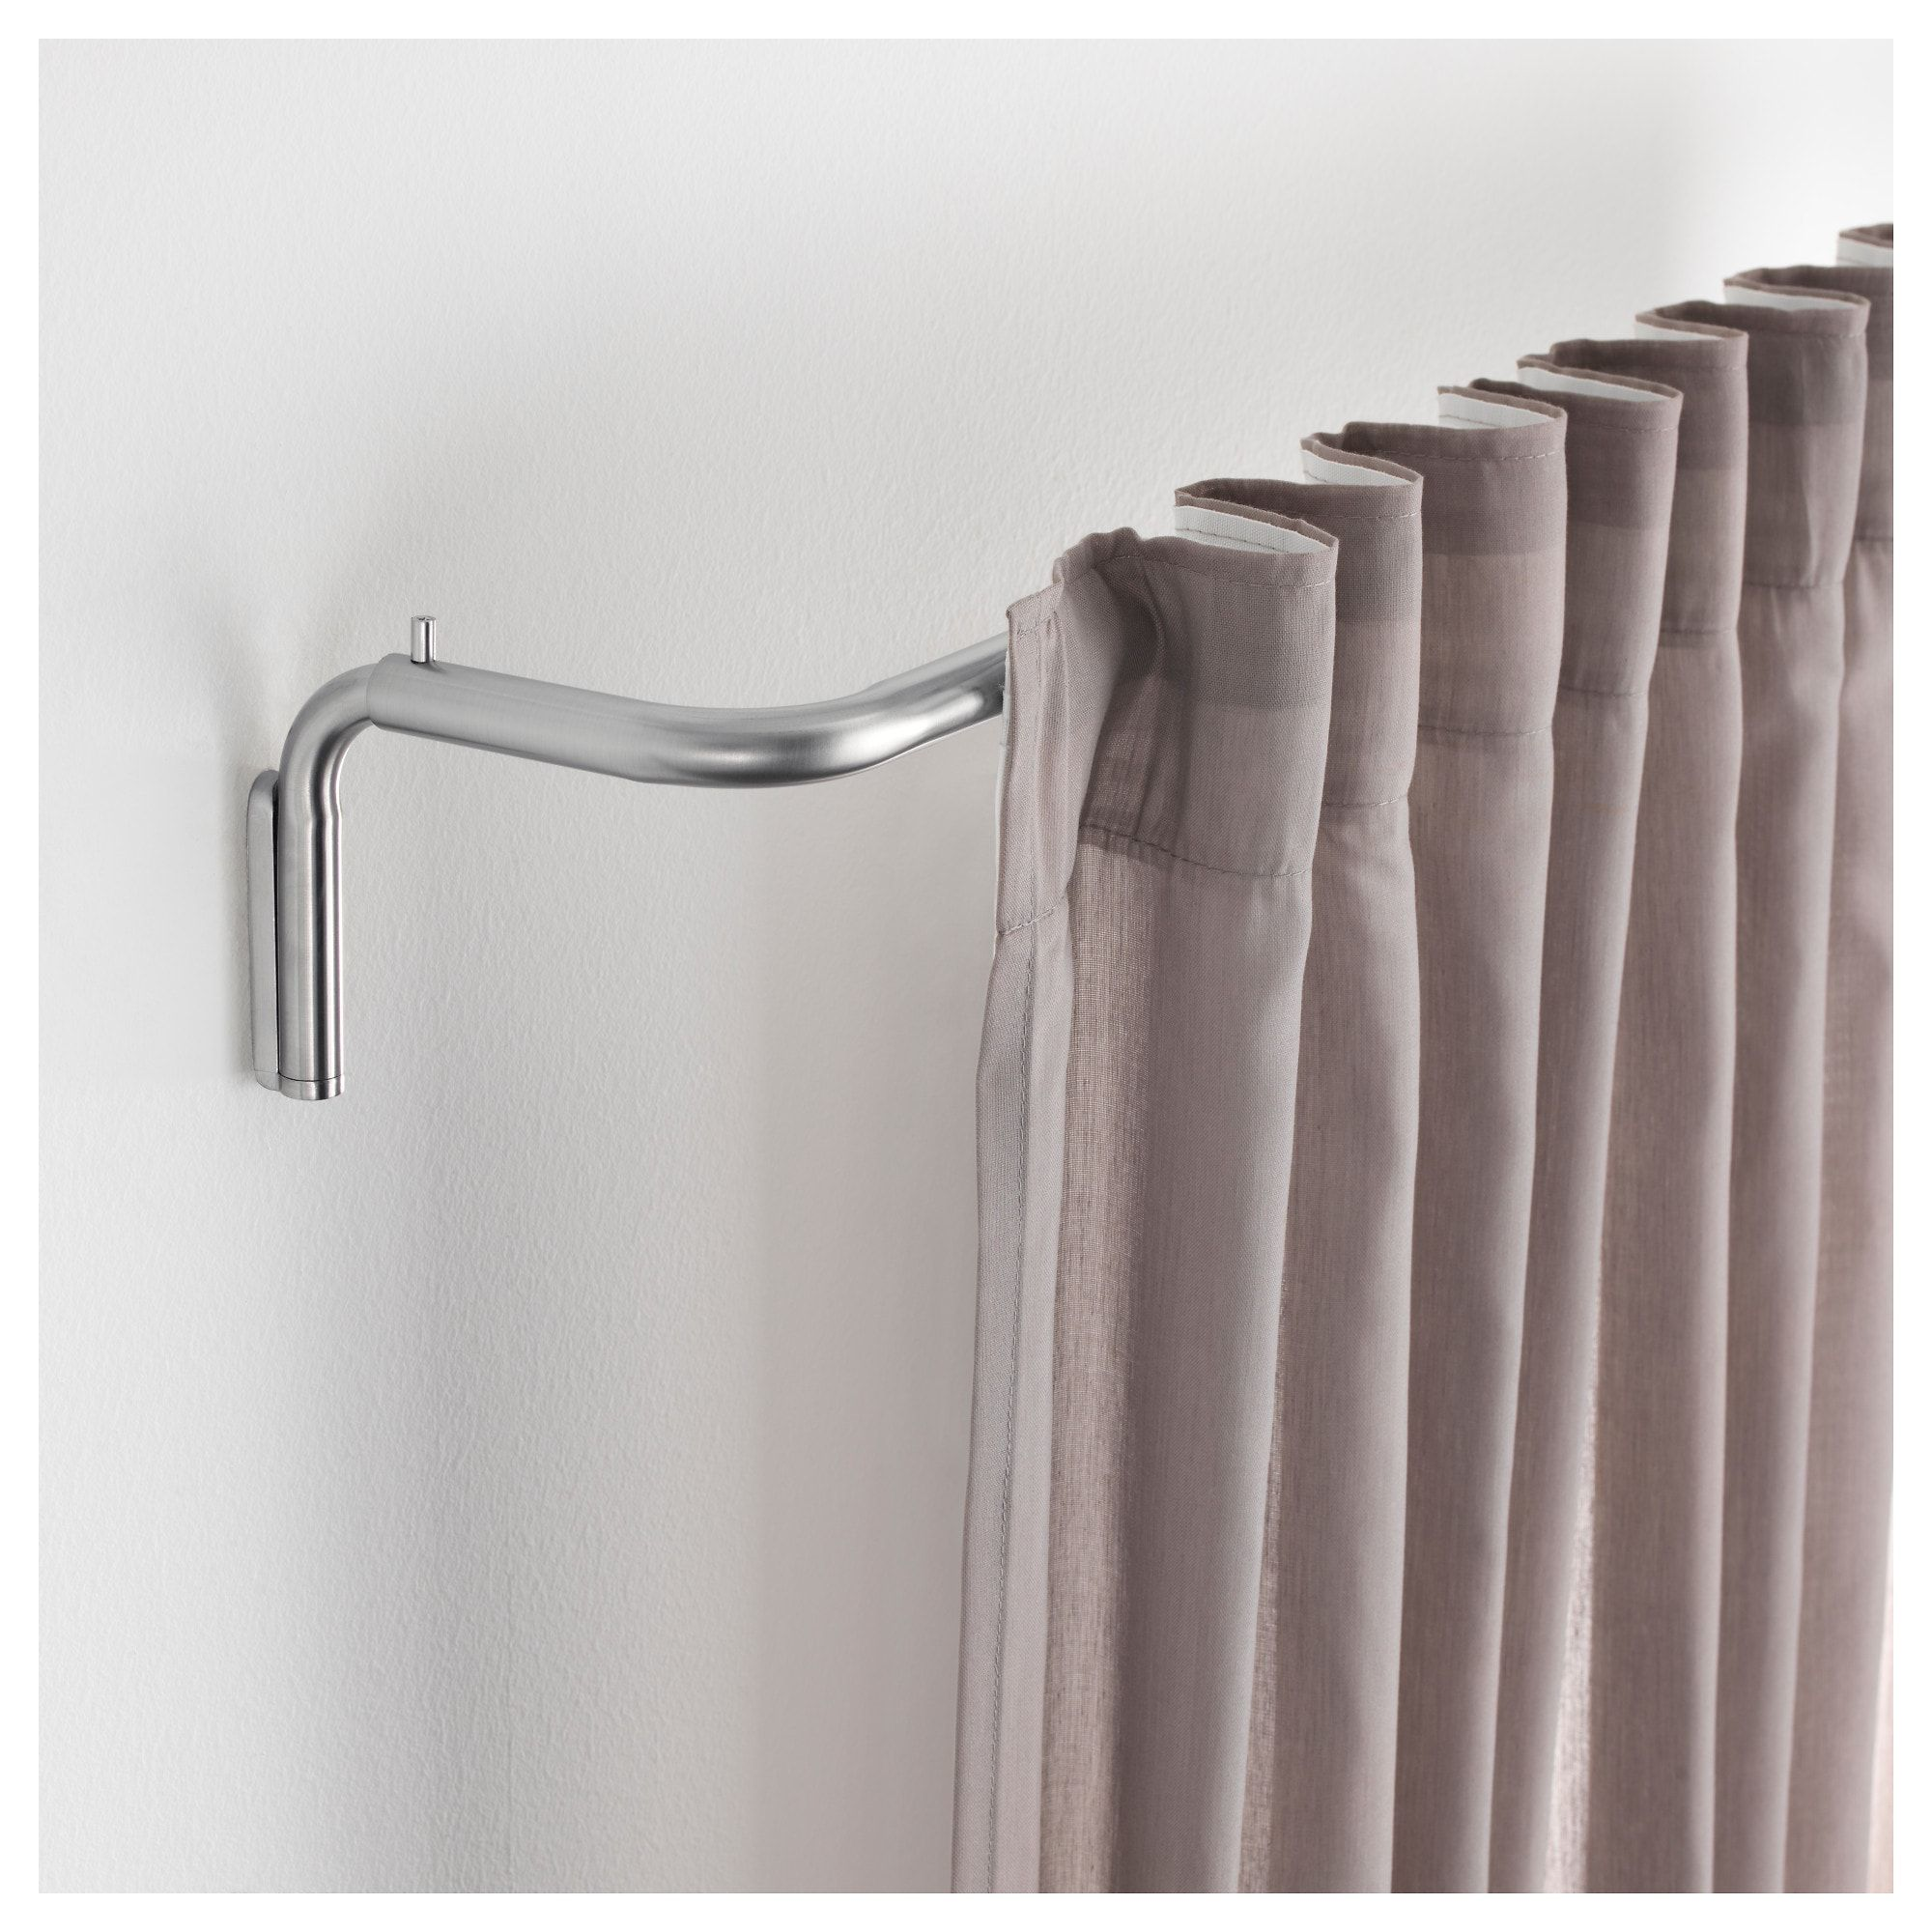 Teleskopstange Vorhang Tidpunkt Curtain Rod Set Nickel Plated Decor Curtains